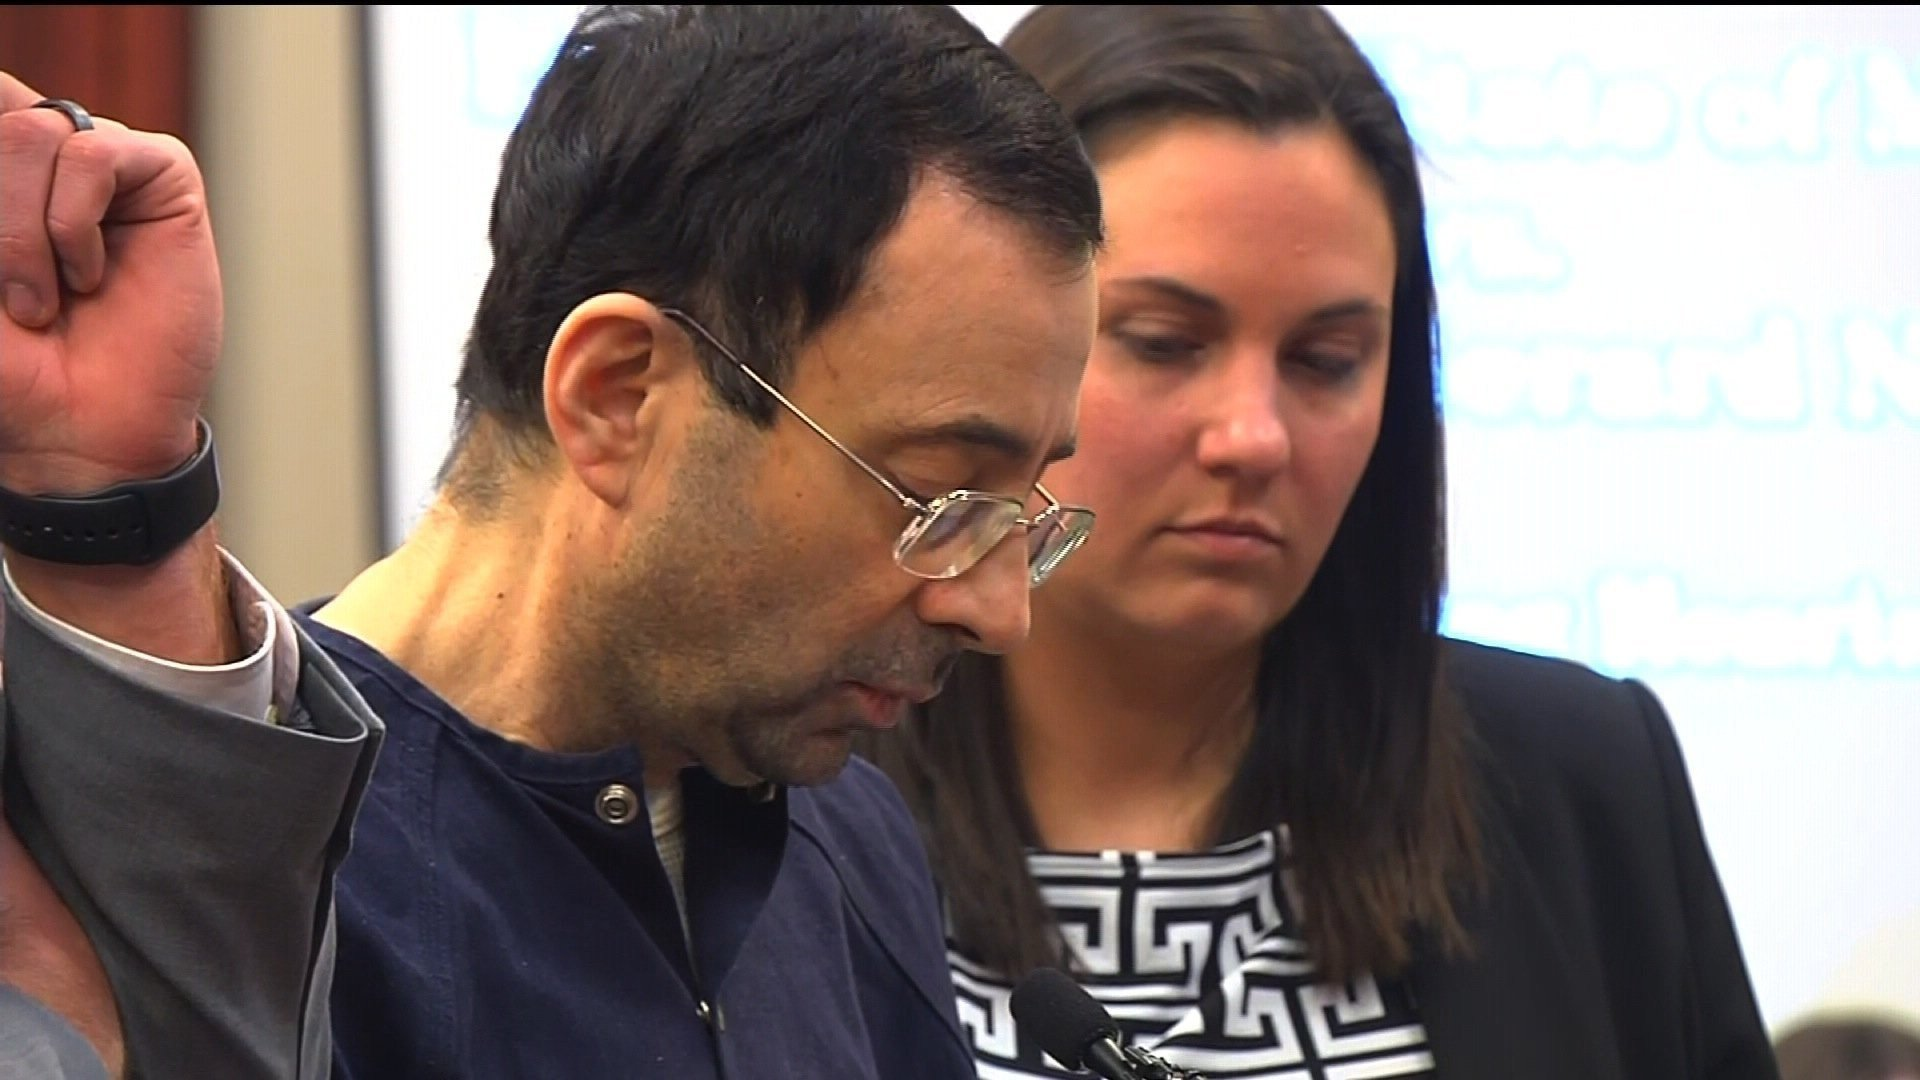 Father of 3 victims attacks Larry Nassar during sentencing